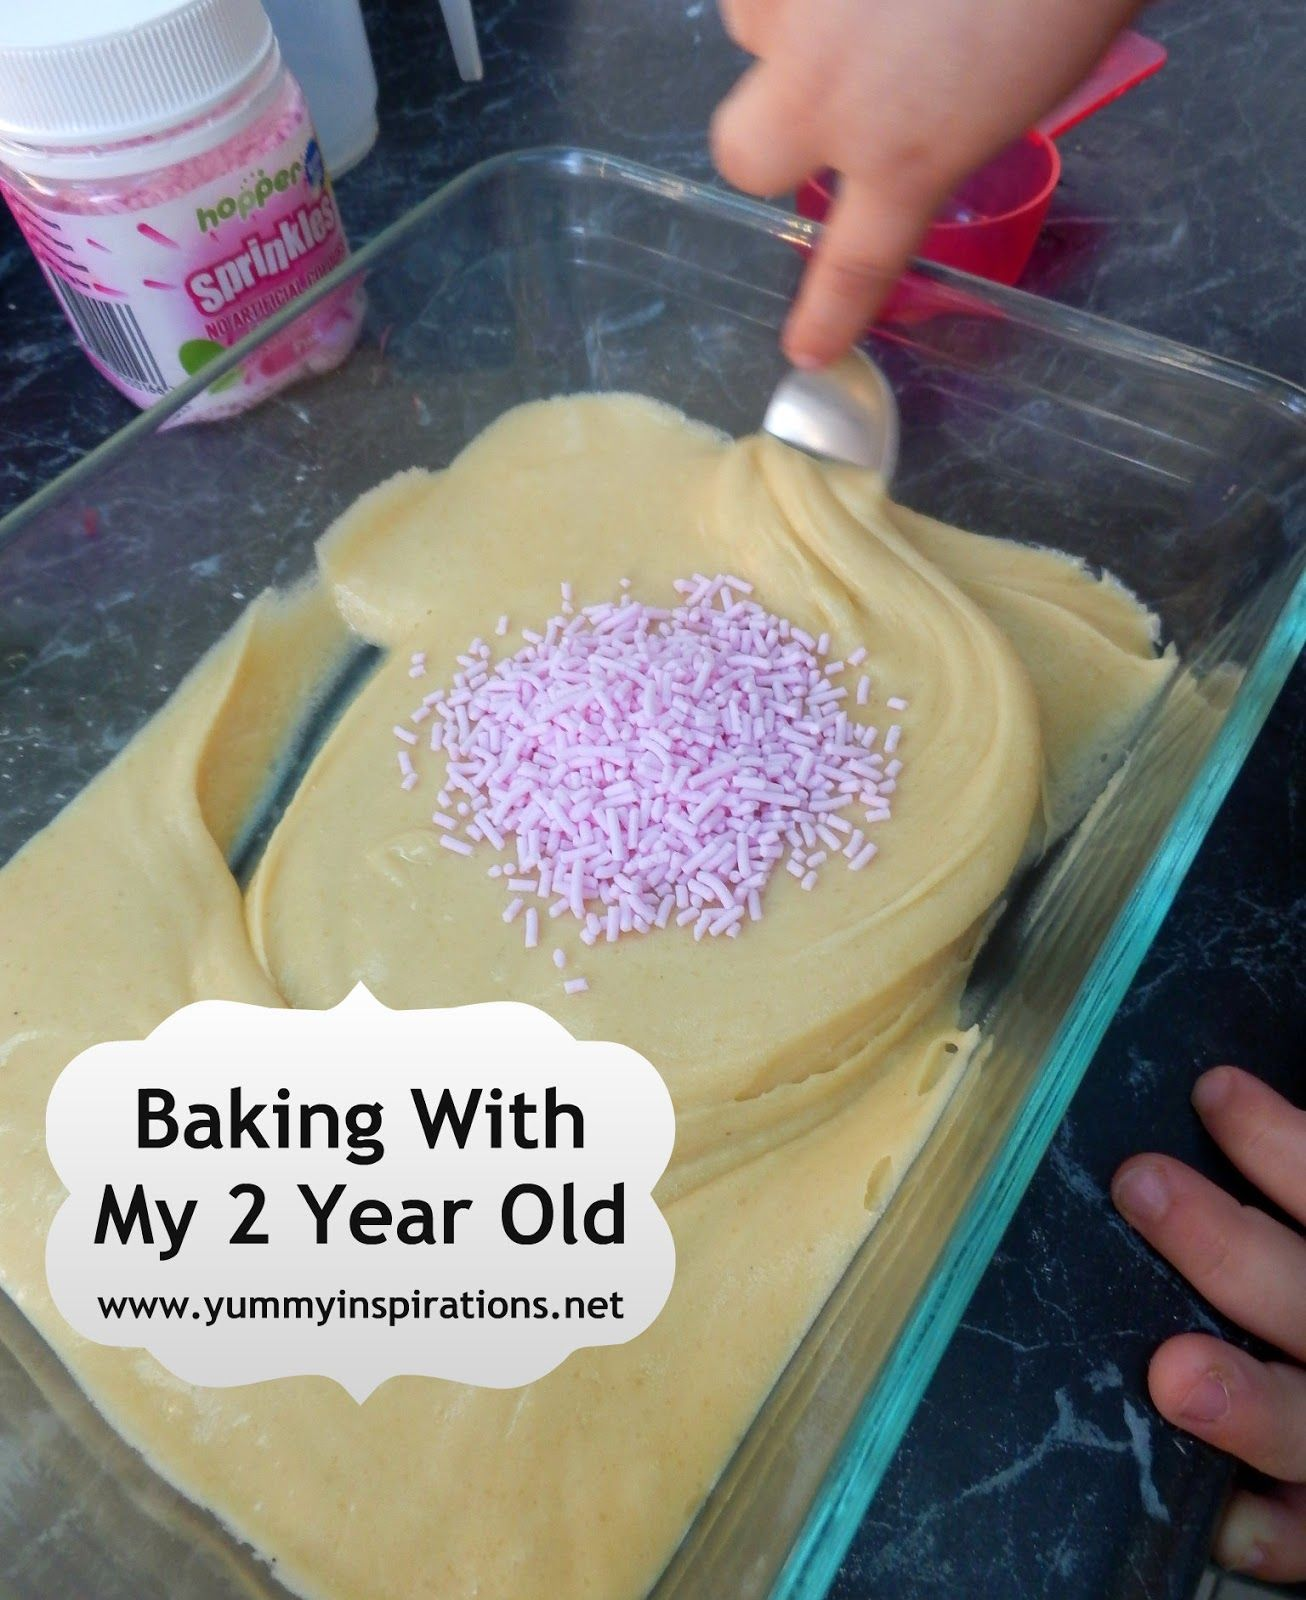 Baking With My 2 Year Old